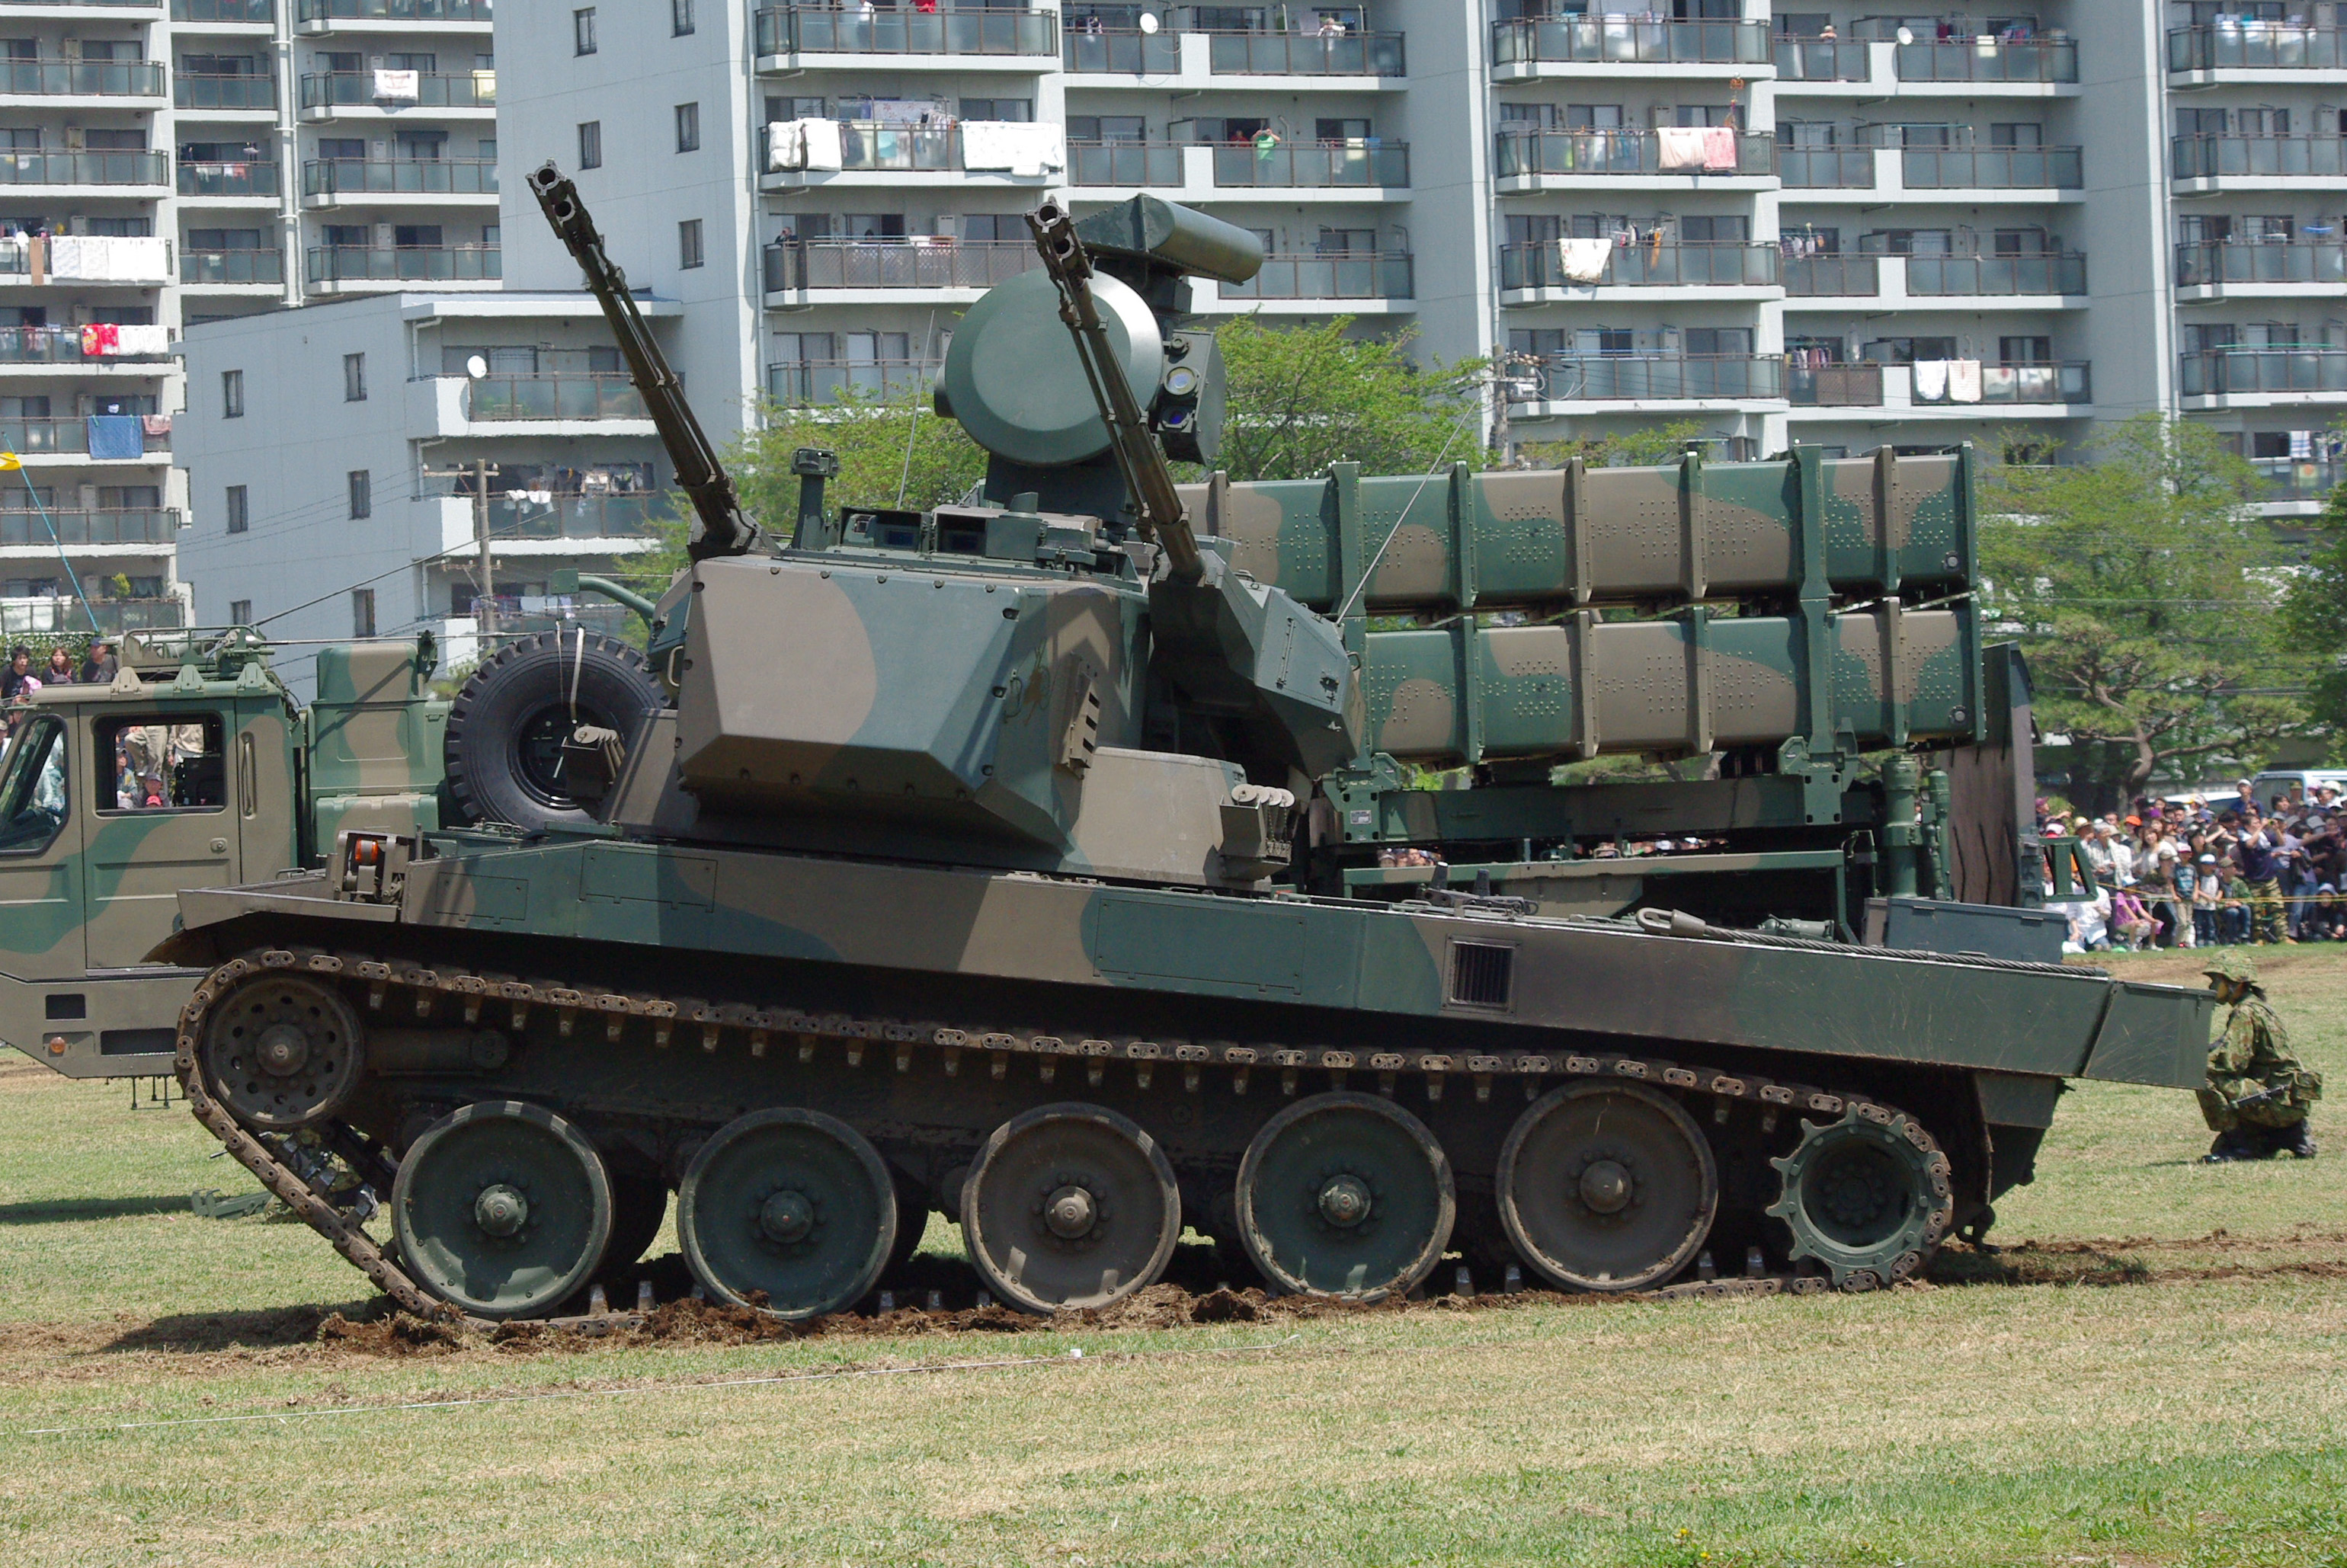 http://upload.wikimedia.org/wikipedia/commons/7/7b/JGSDF_Type_87_Self-Propelled_Anti-Aircraft_Gun_20120429-03.JPG